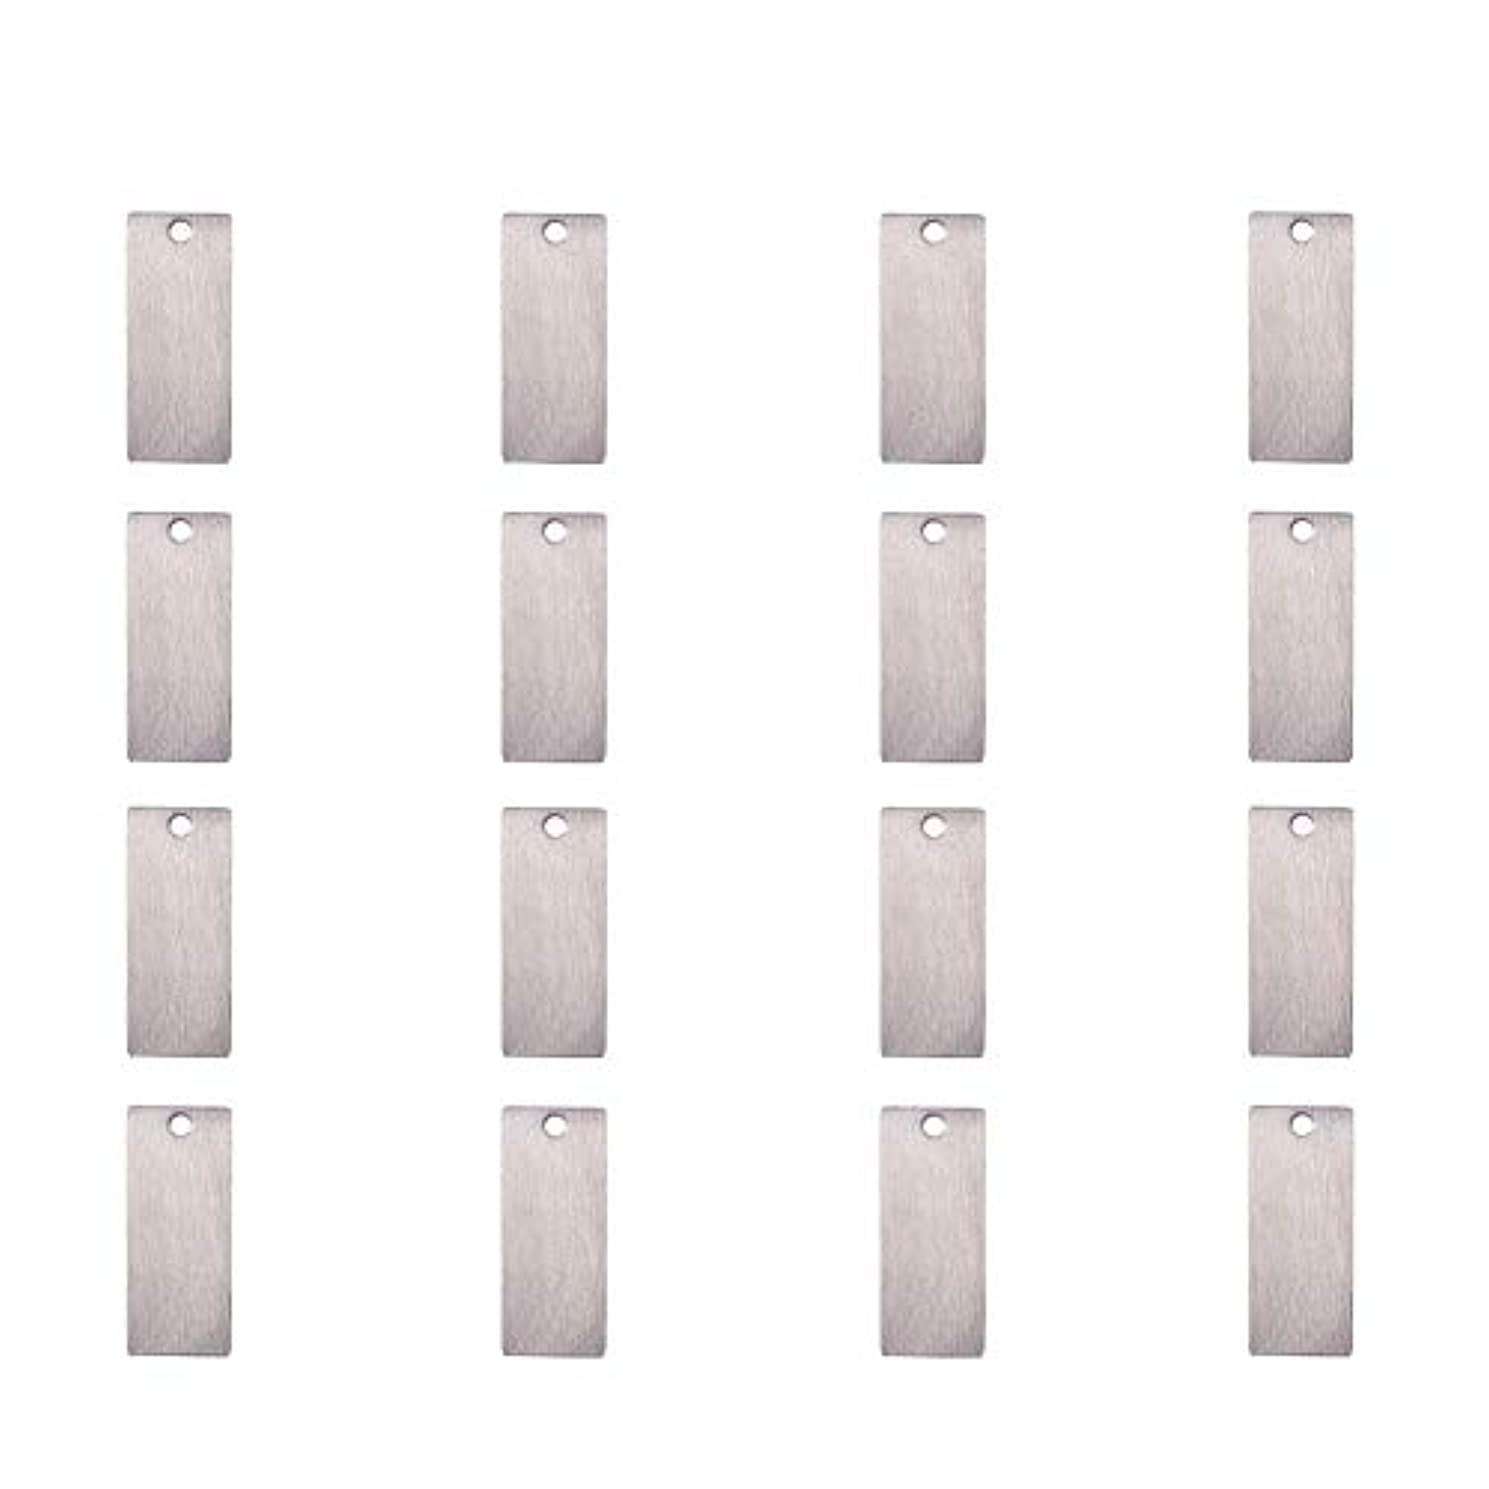 PandaHall Elite 50 Pcs 304 Stainless Steel Flat Rectangle Blank Stamping Tag Pendants Charms 38x16mm for Jewelry Making